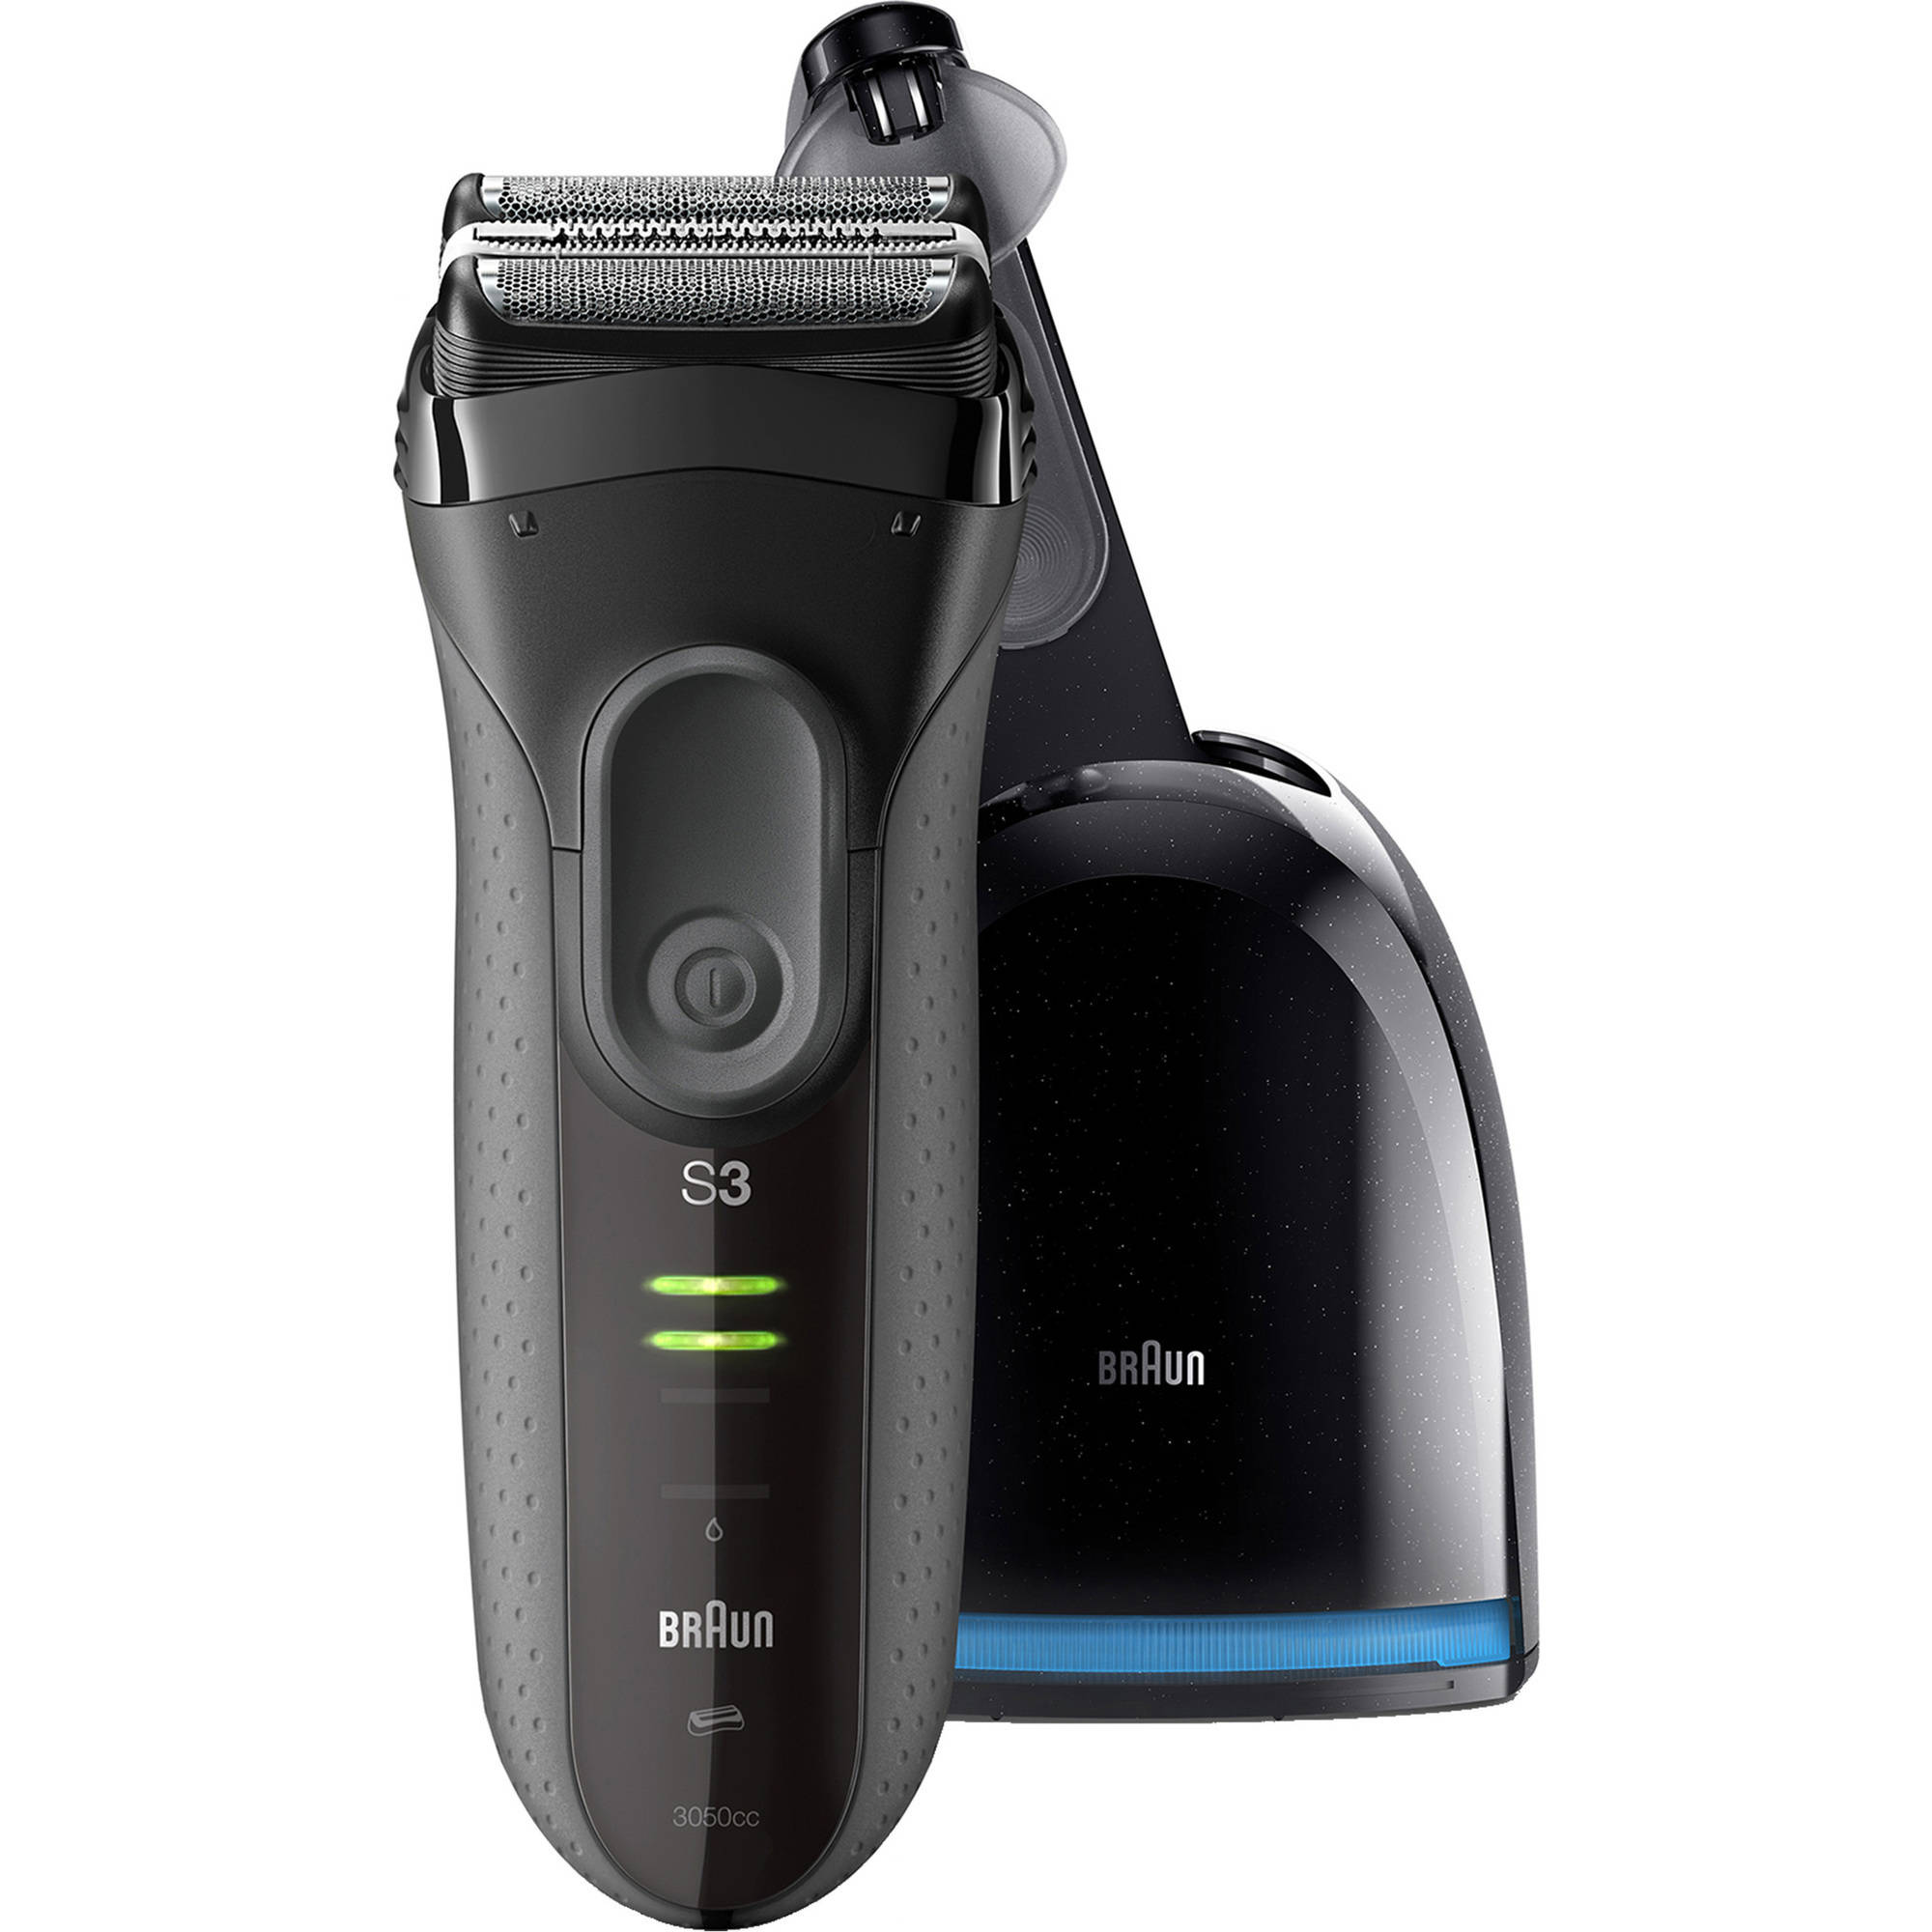 Braun Series 3 3050cc ($25 Mail-In Rebate Available) Electric Shaver with Clean & Charge Station Image 2 of 9